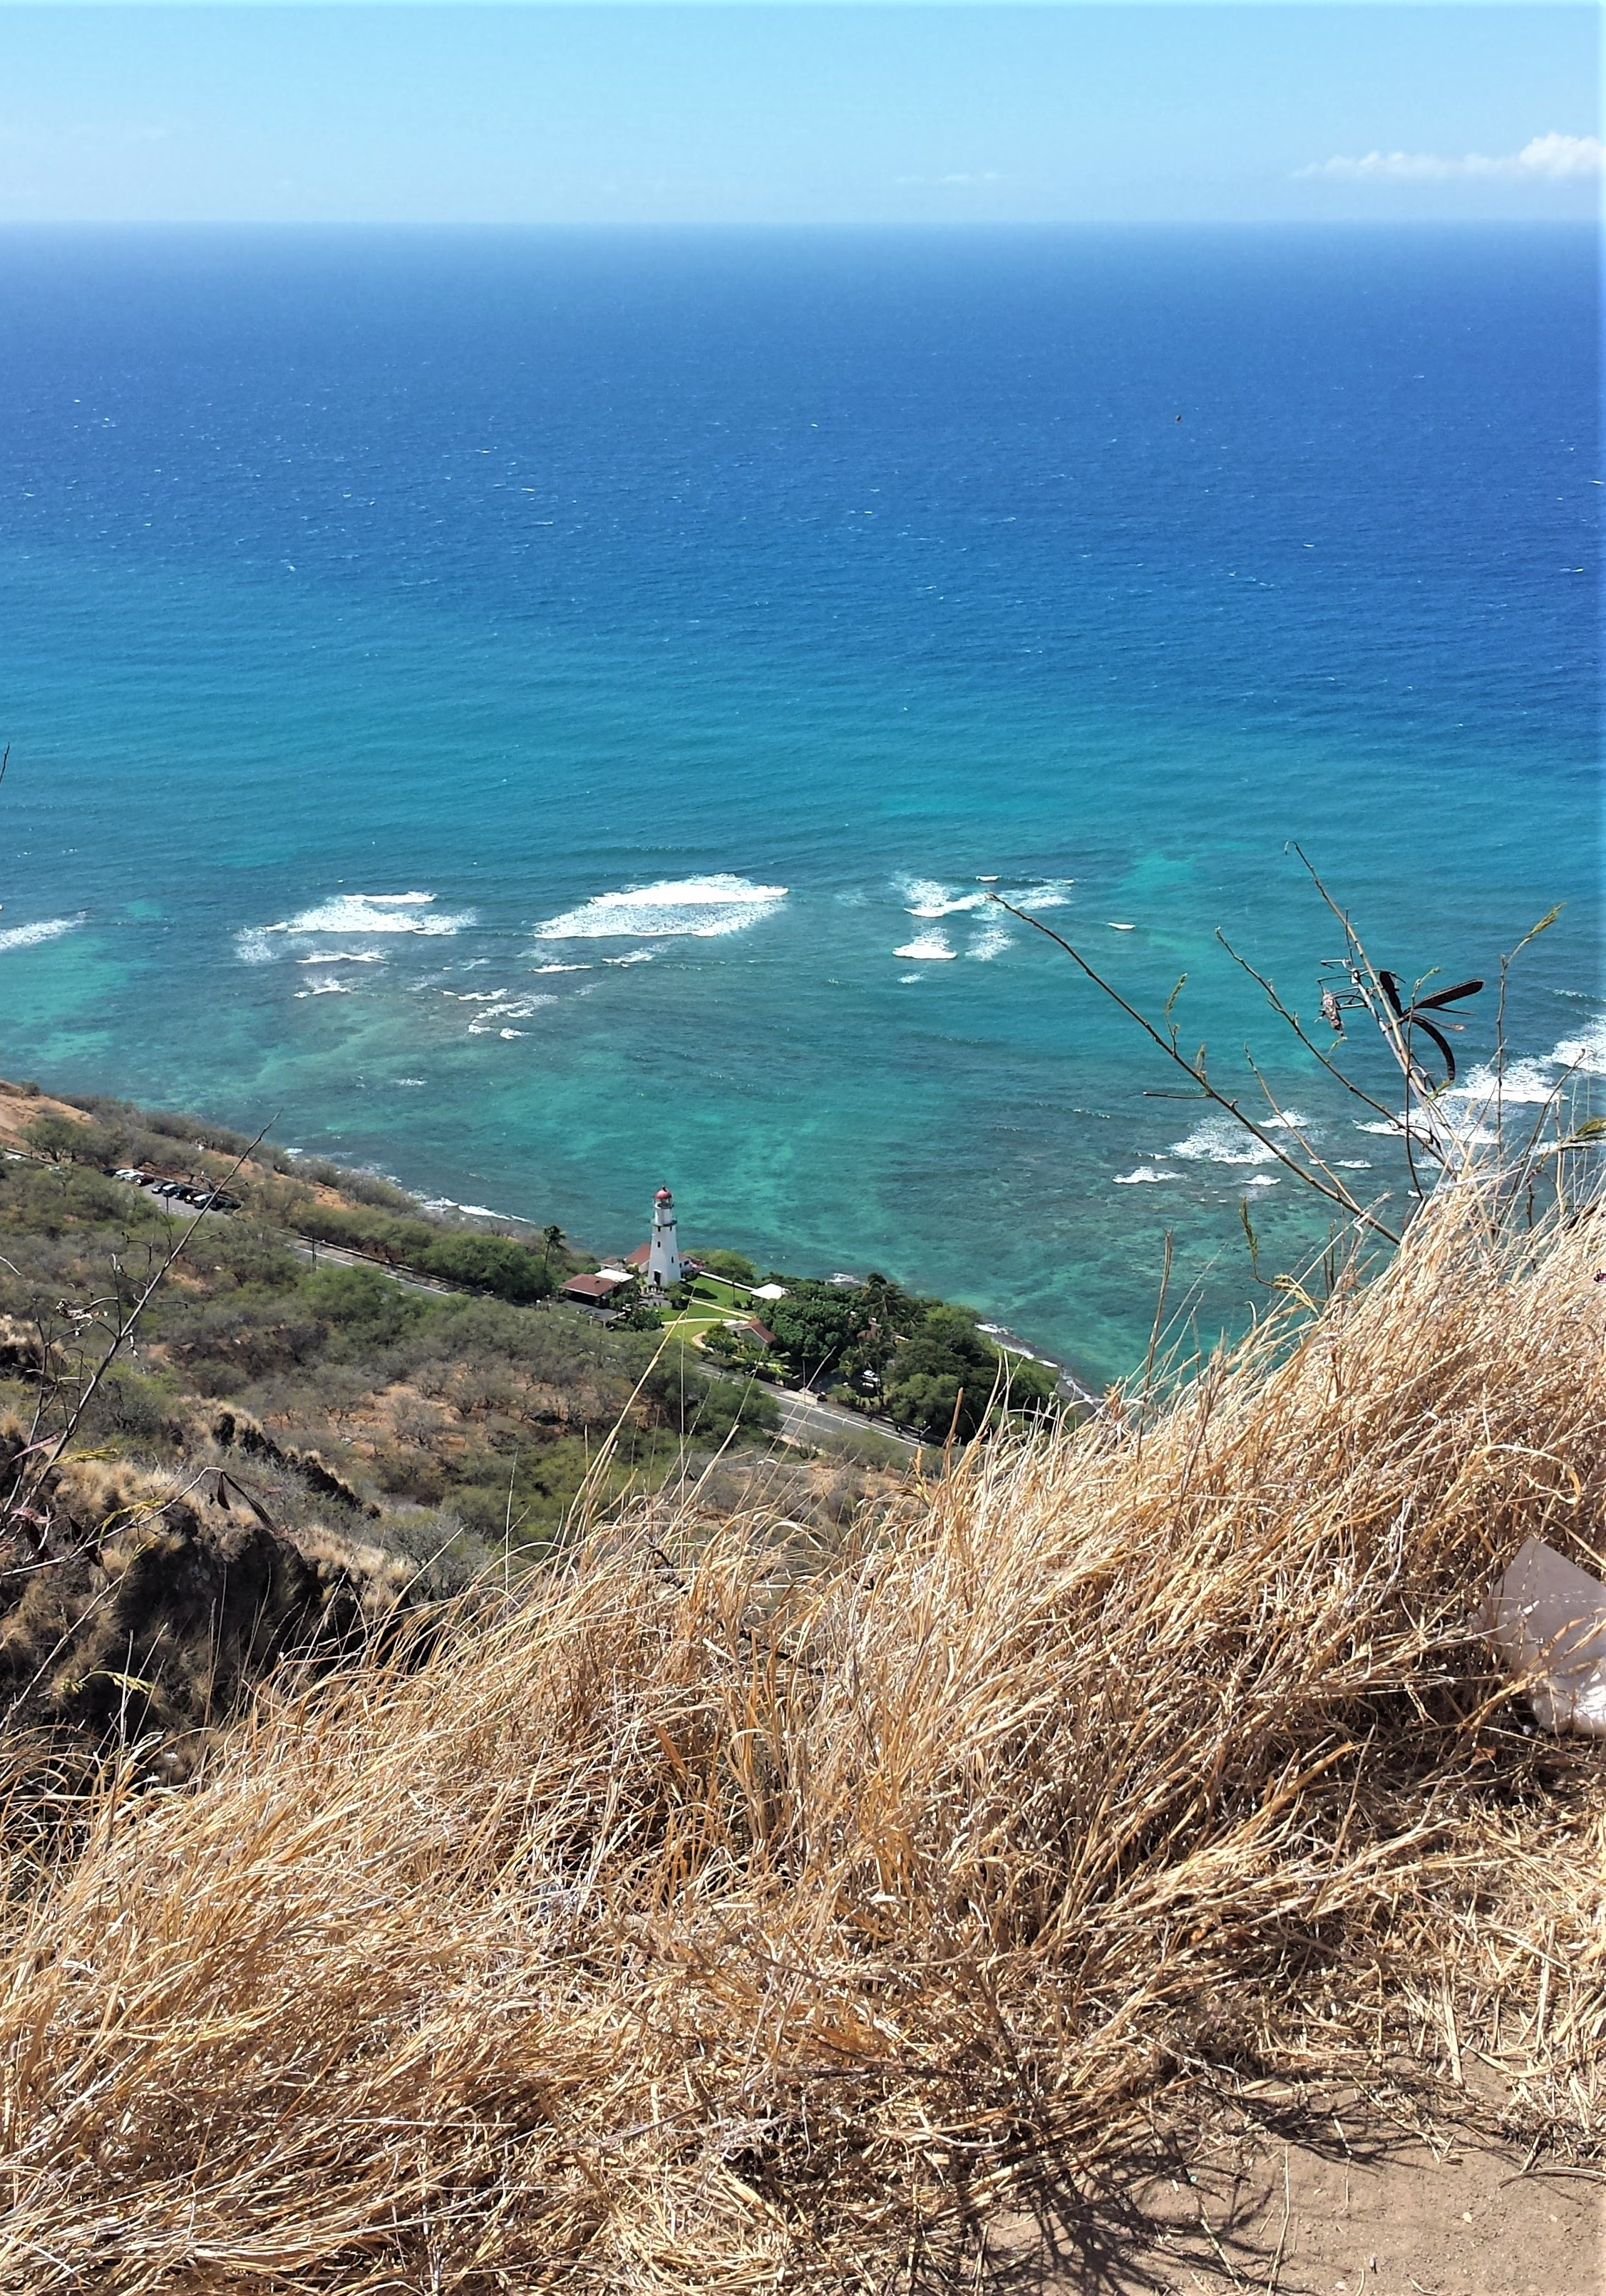 View of a lighthouse and the ocean from the Diamond Head Hike near Waikiki